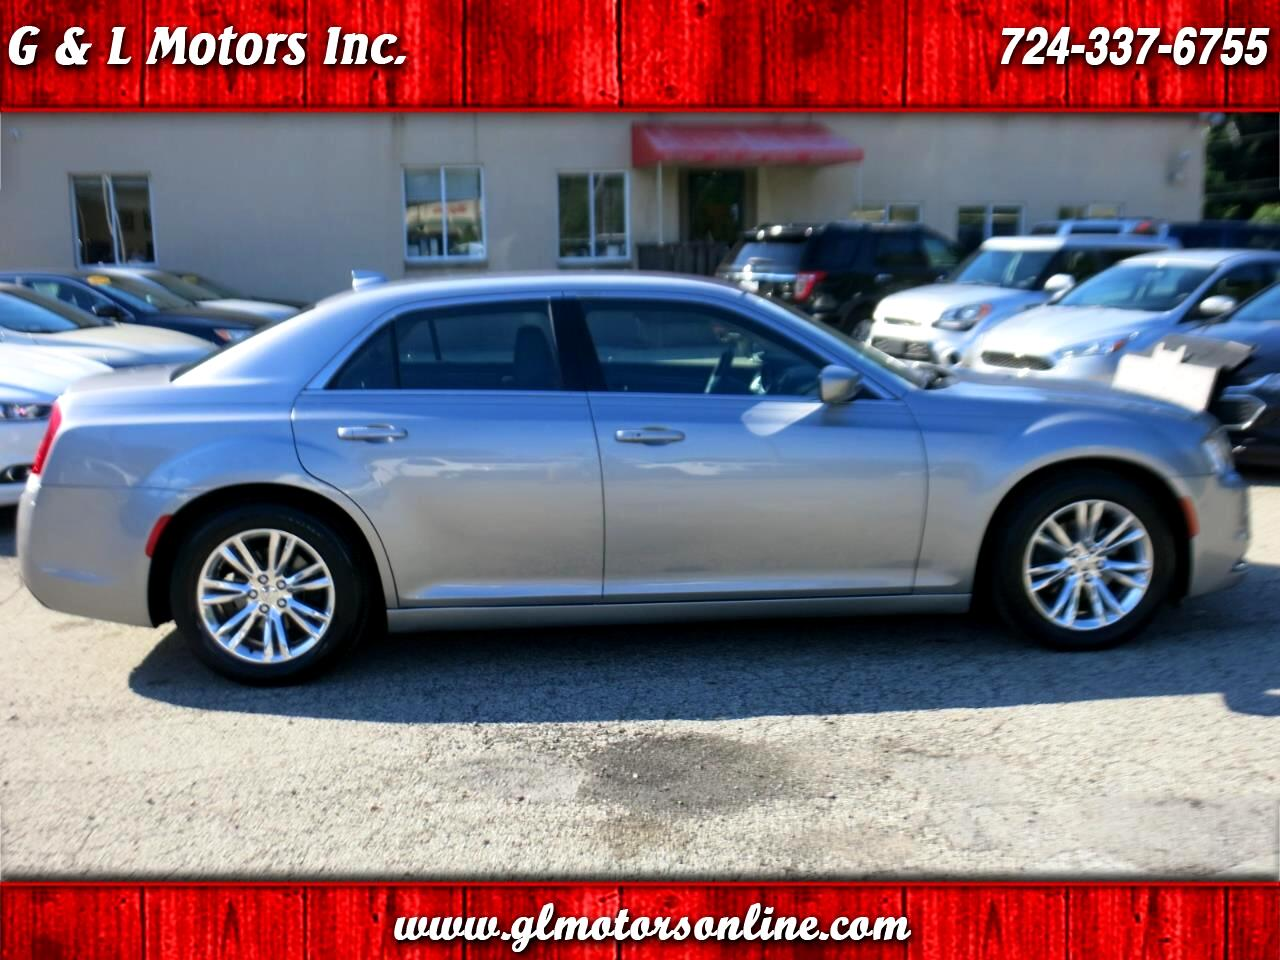 2016 Chrysler 300 4dr Sdn Limited RWD